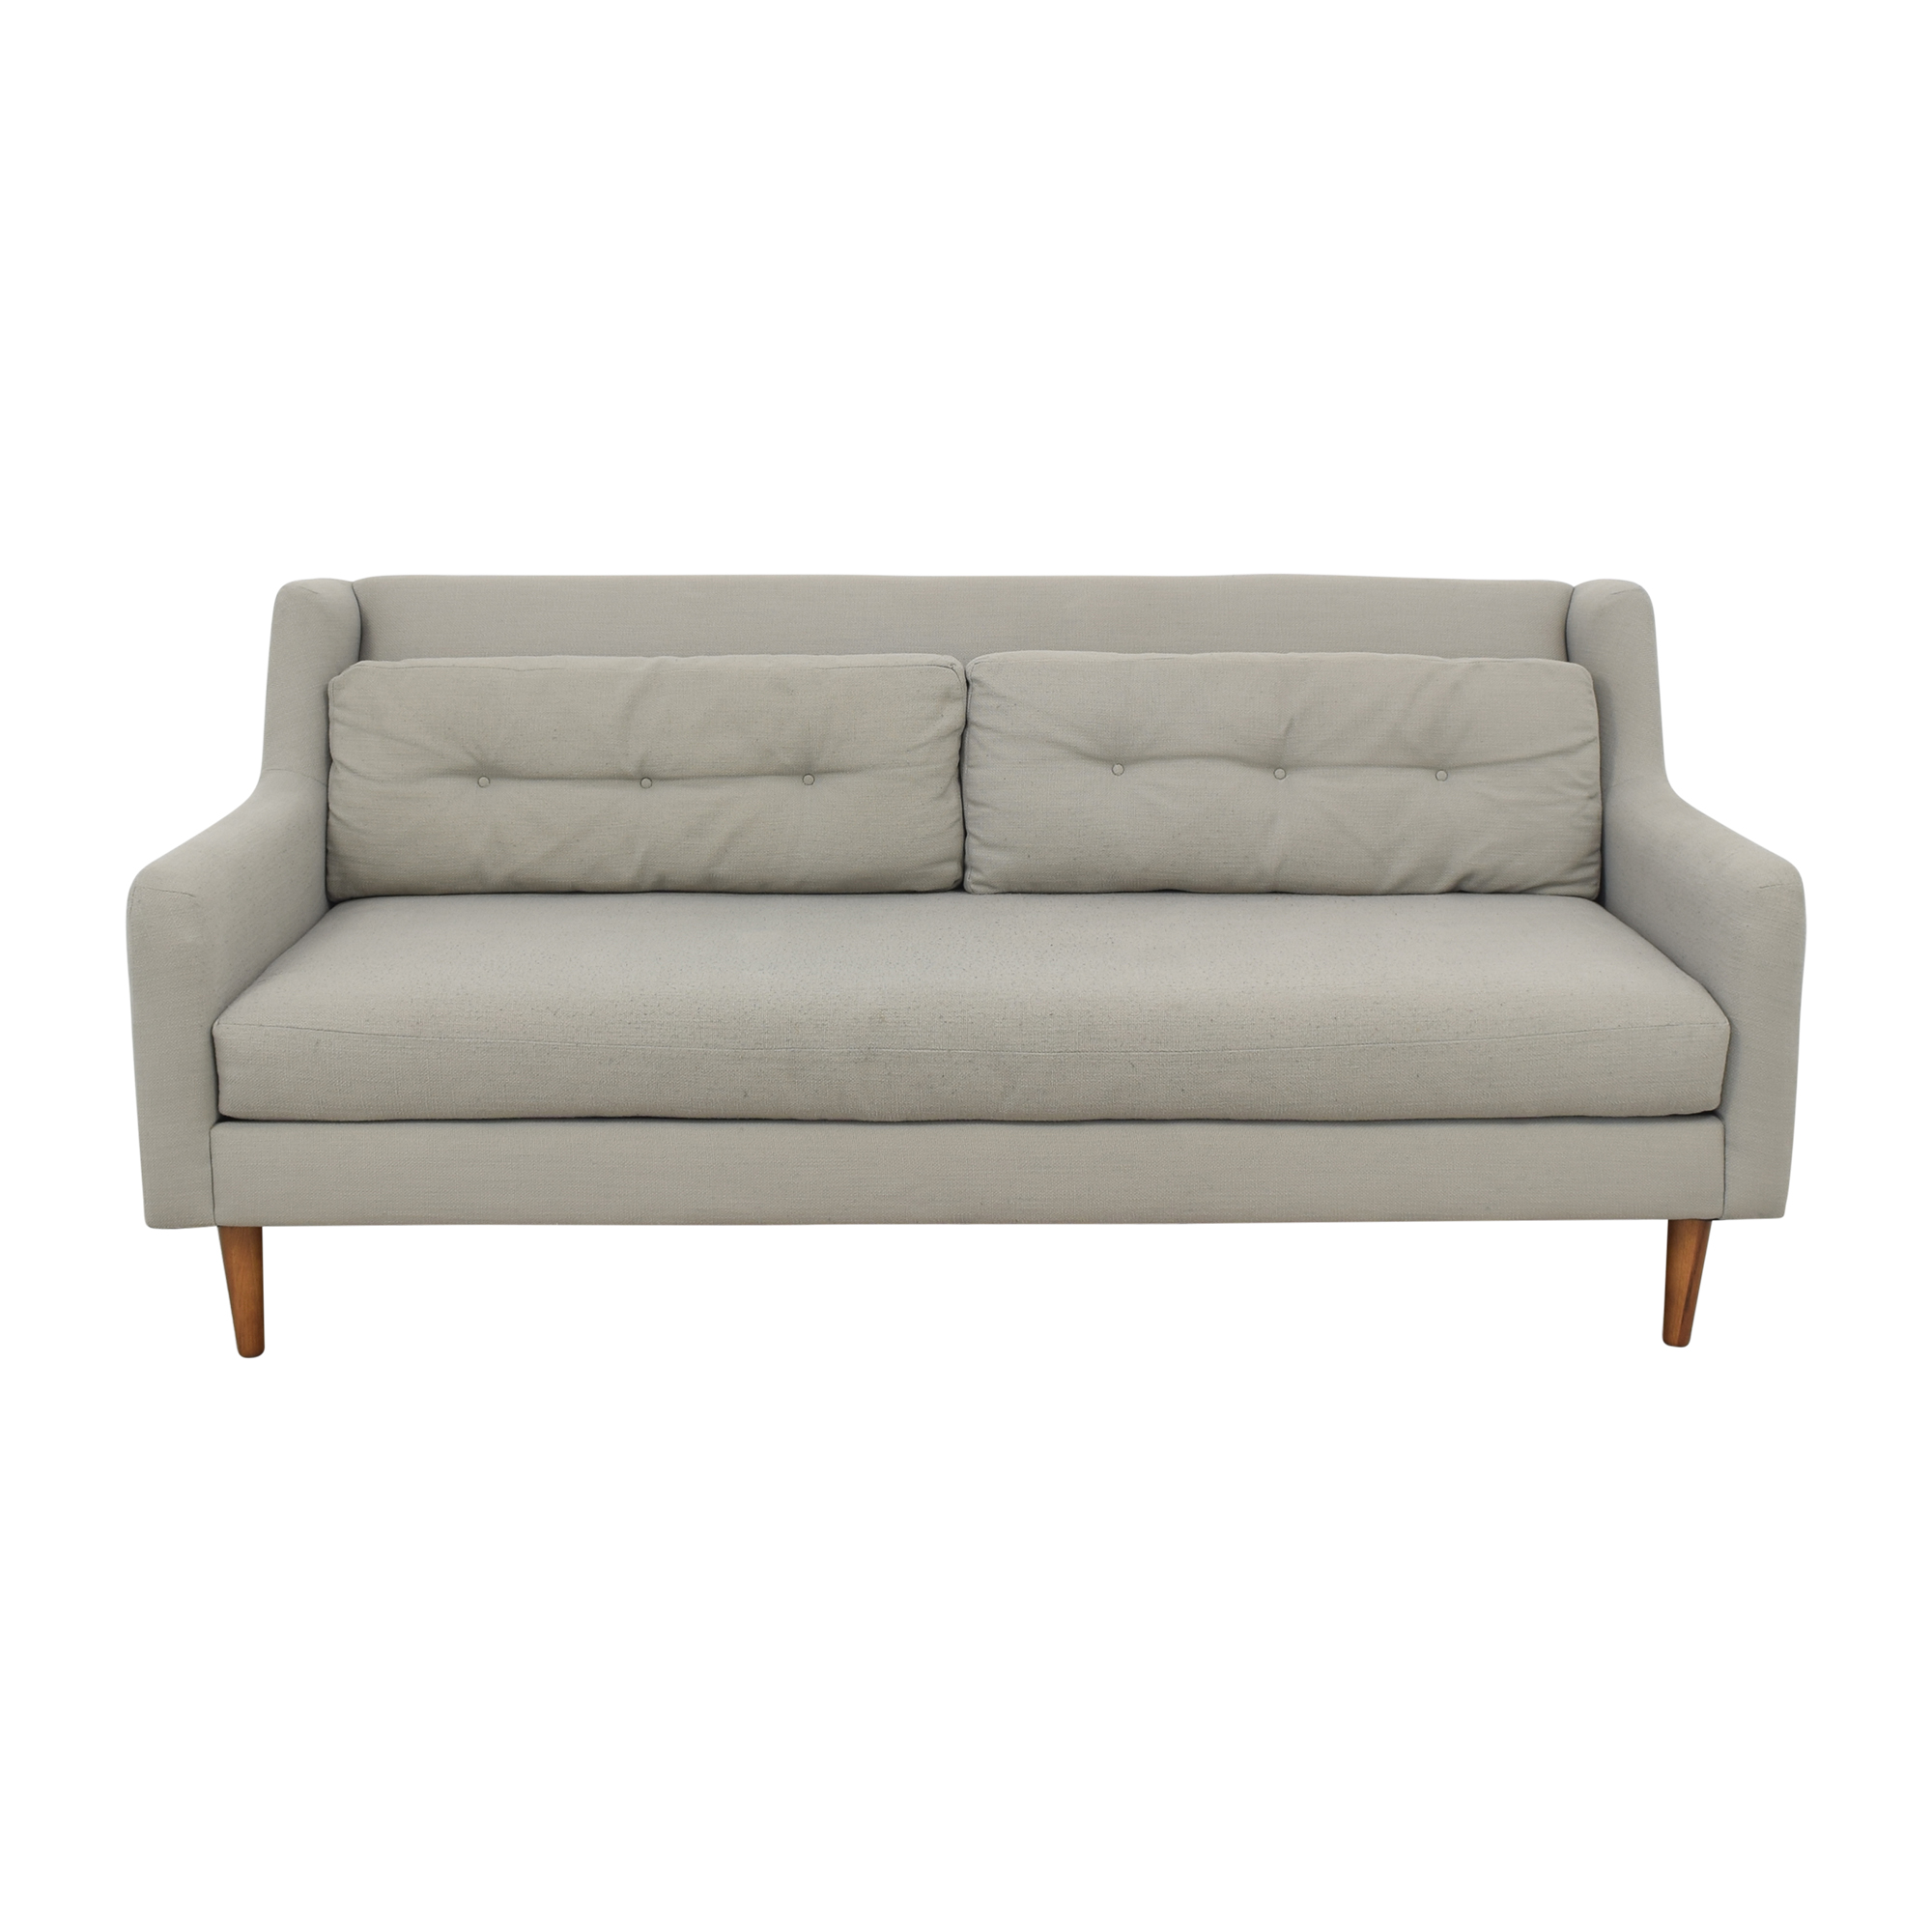 West Elm West Elm Crosby Sofa coupon